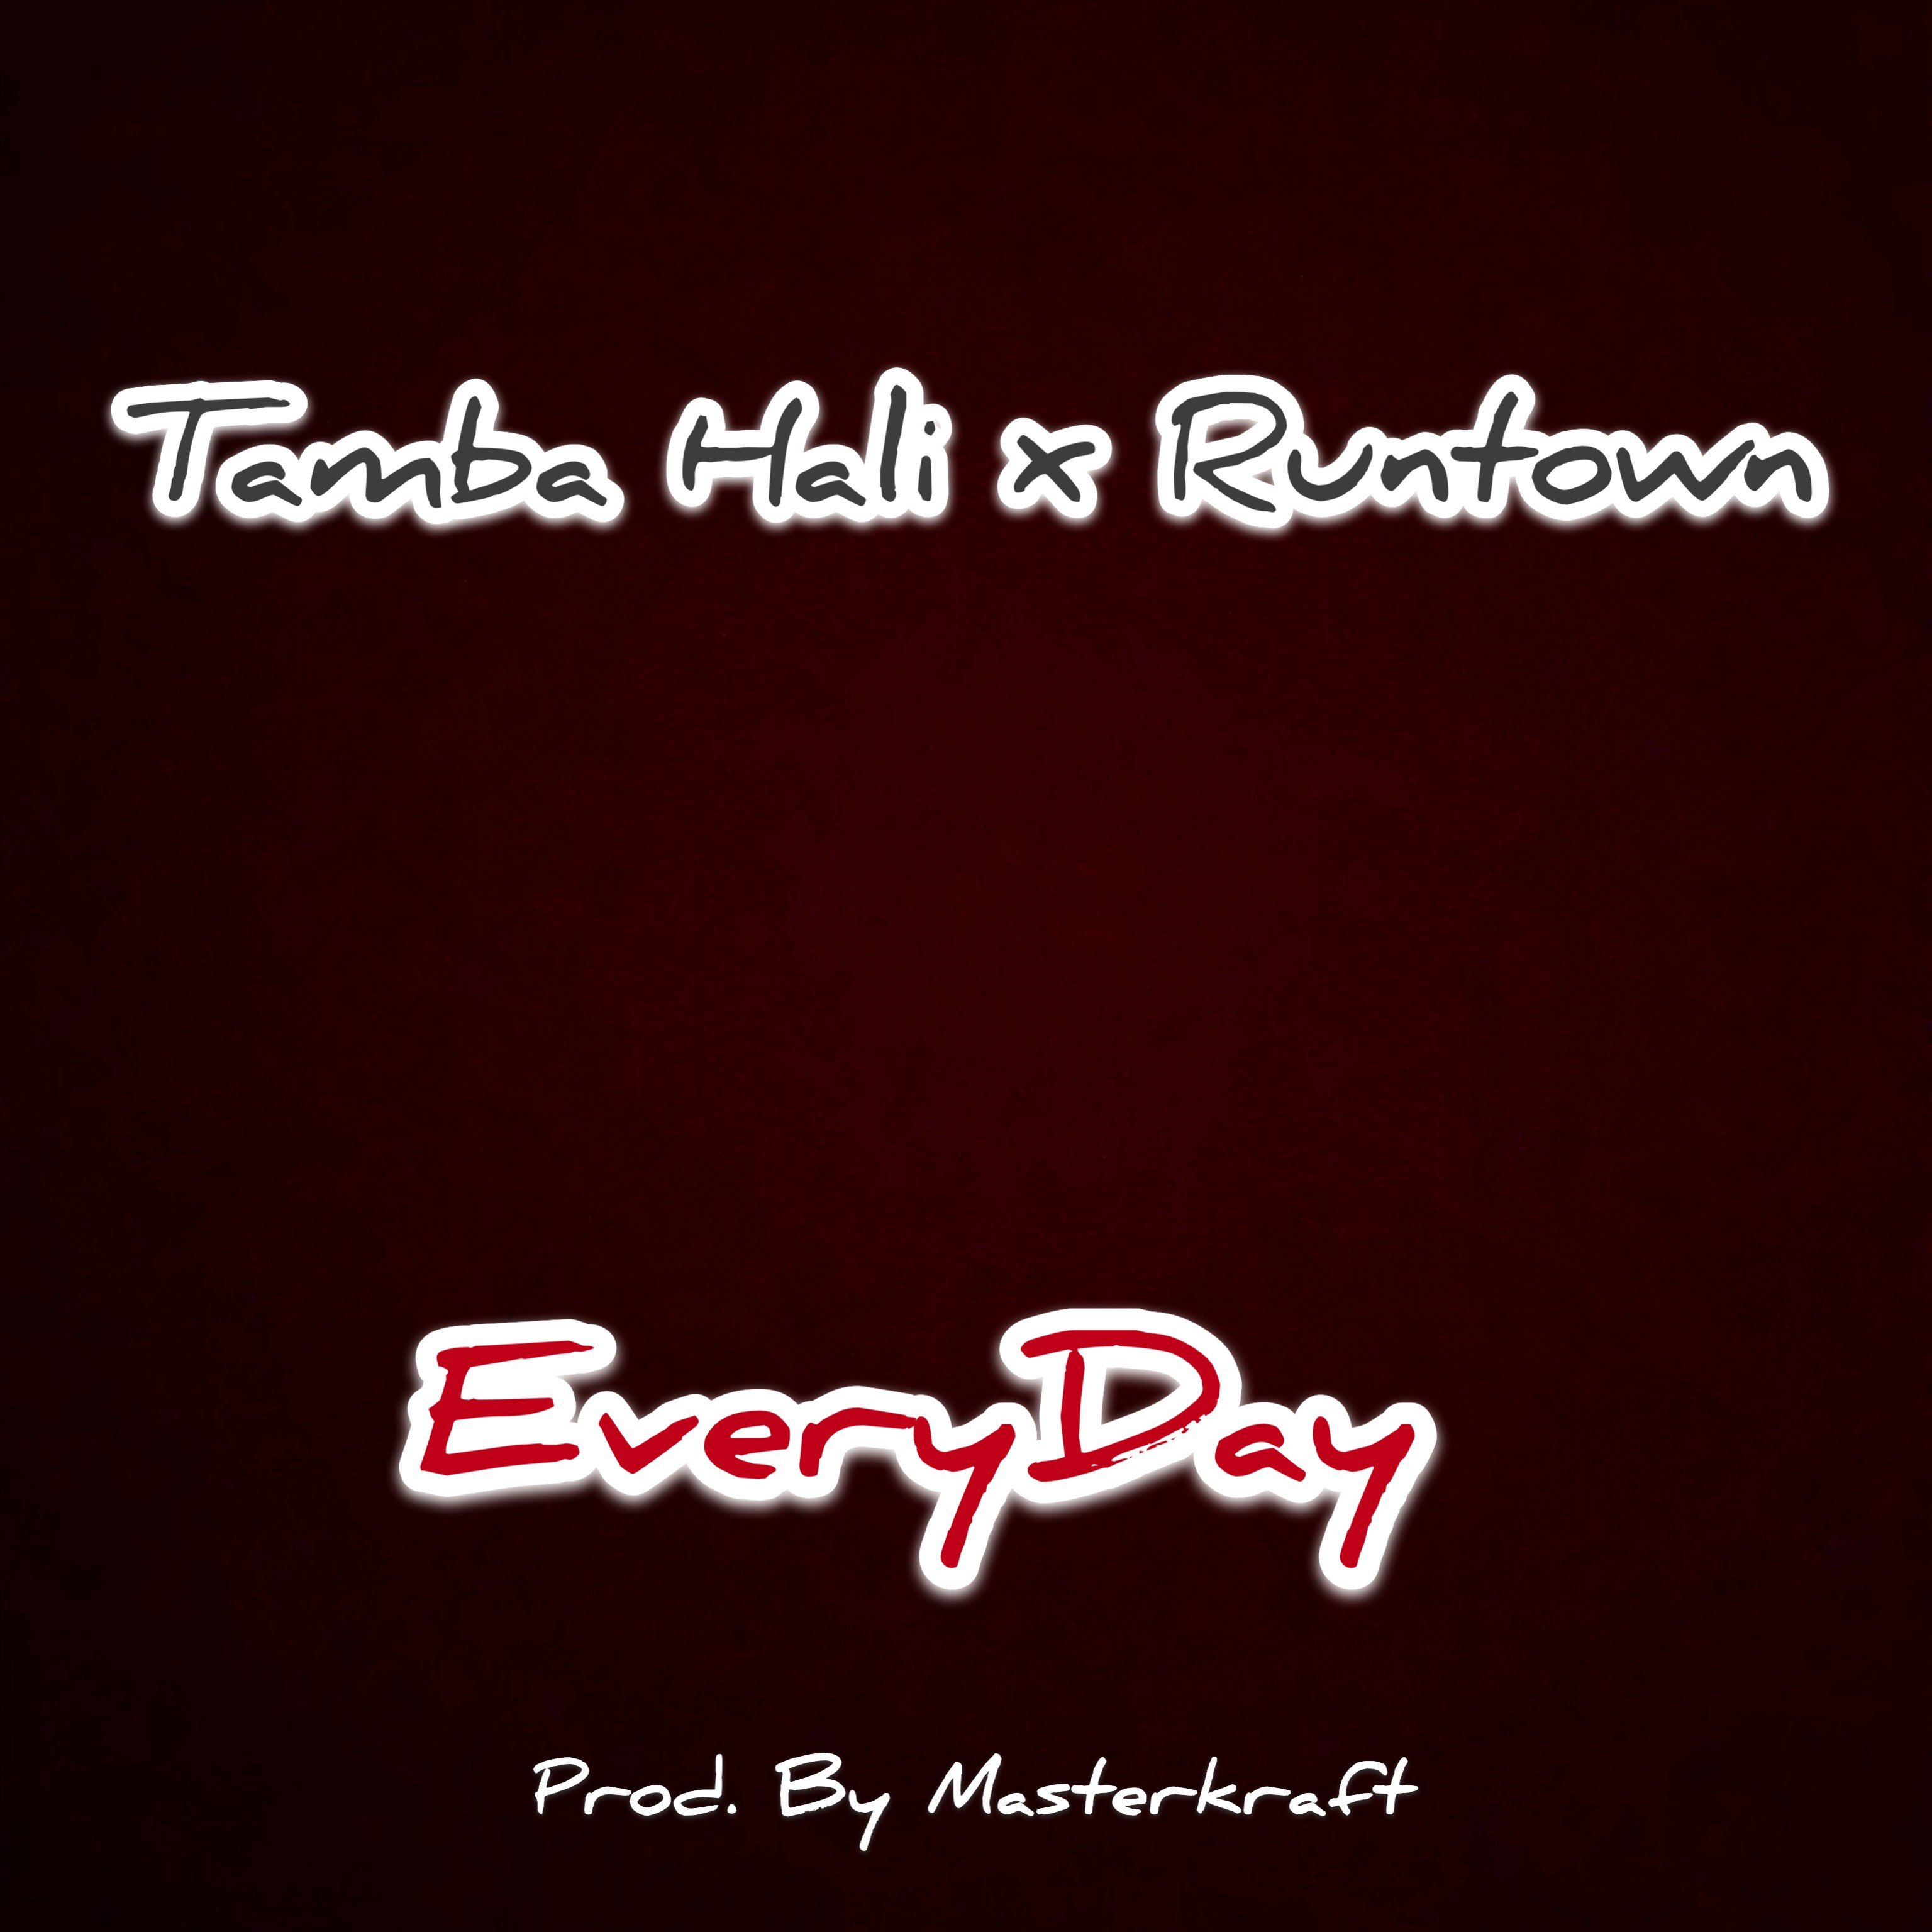 Tamba Hali & Runtown – Everyday